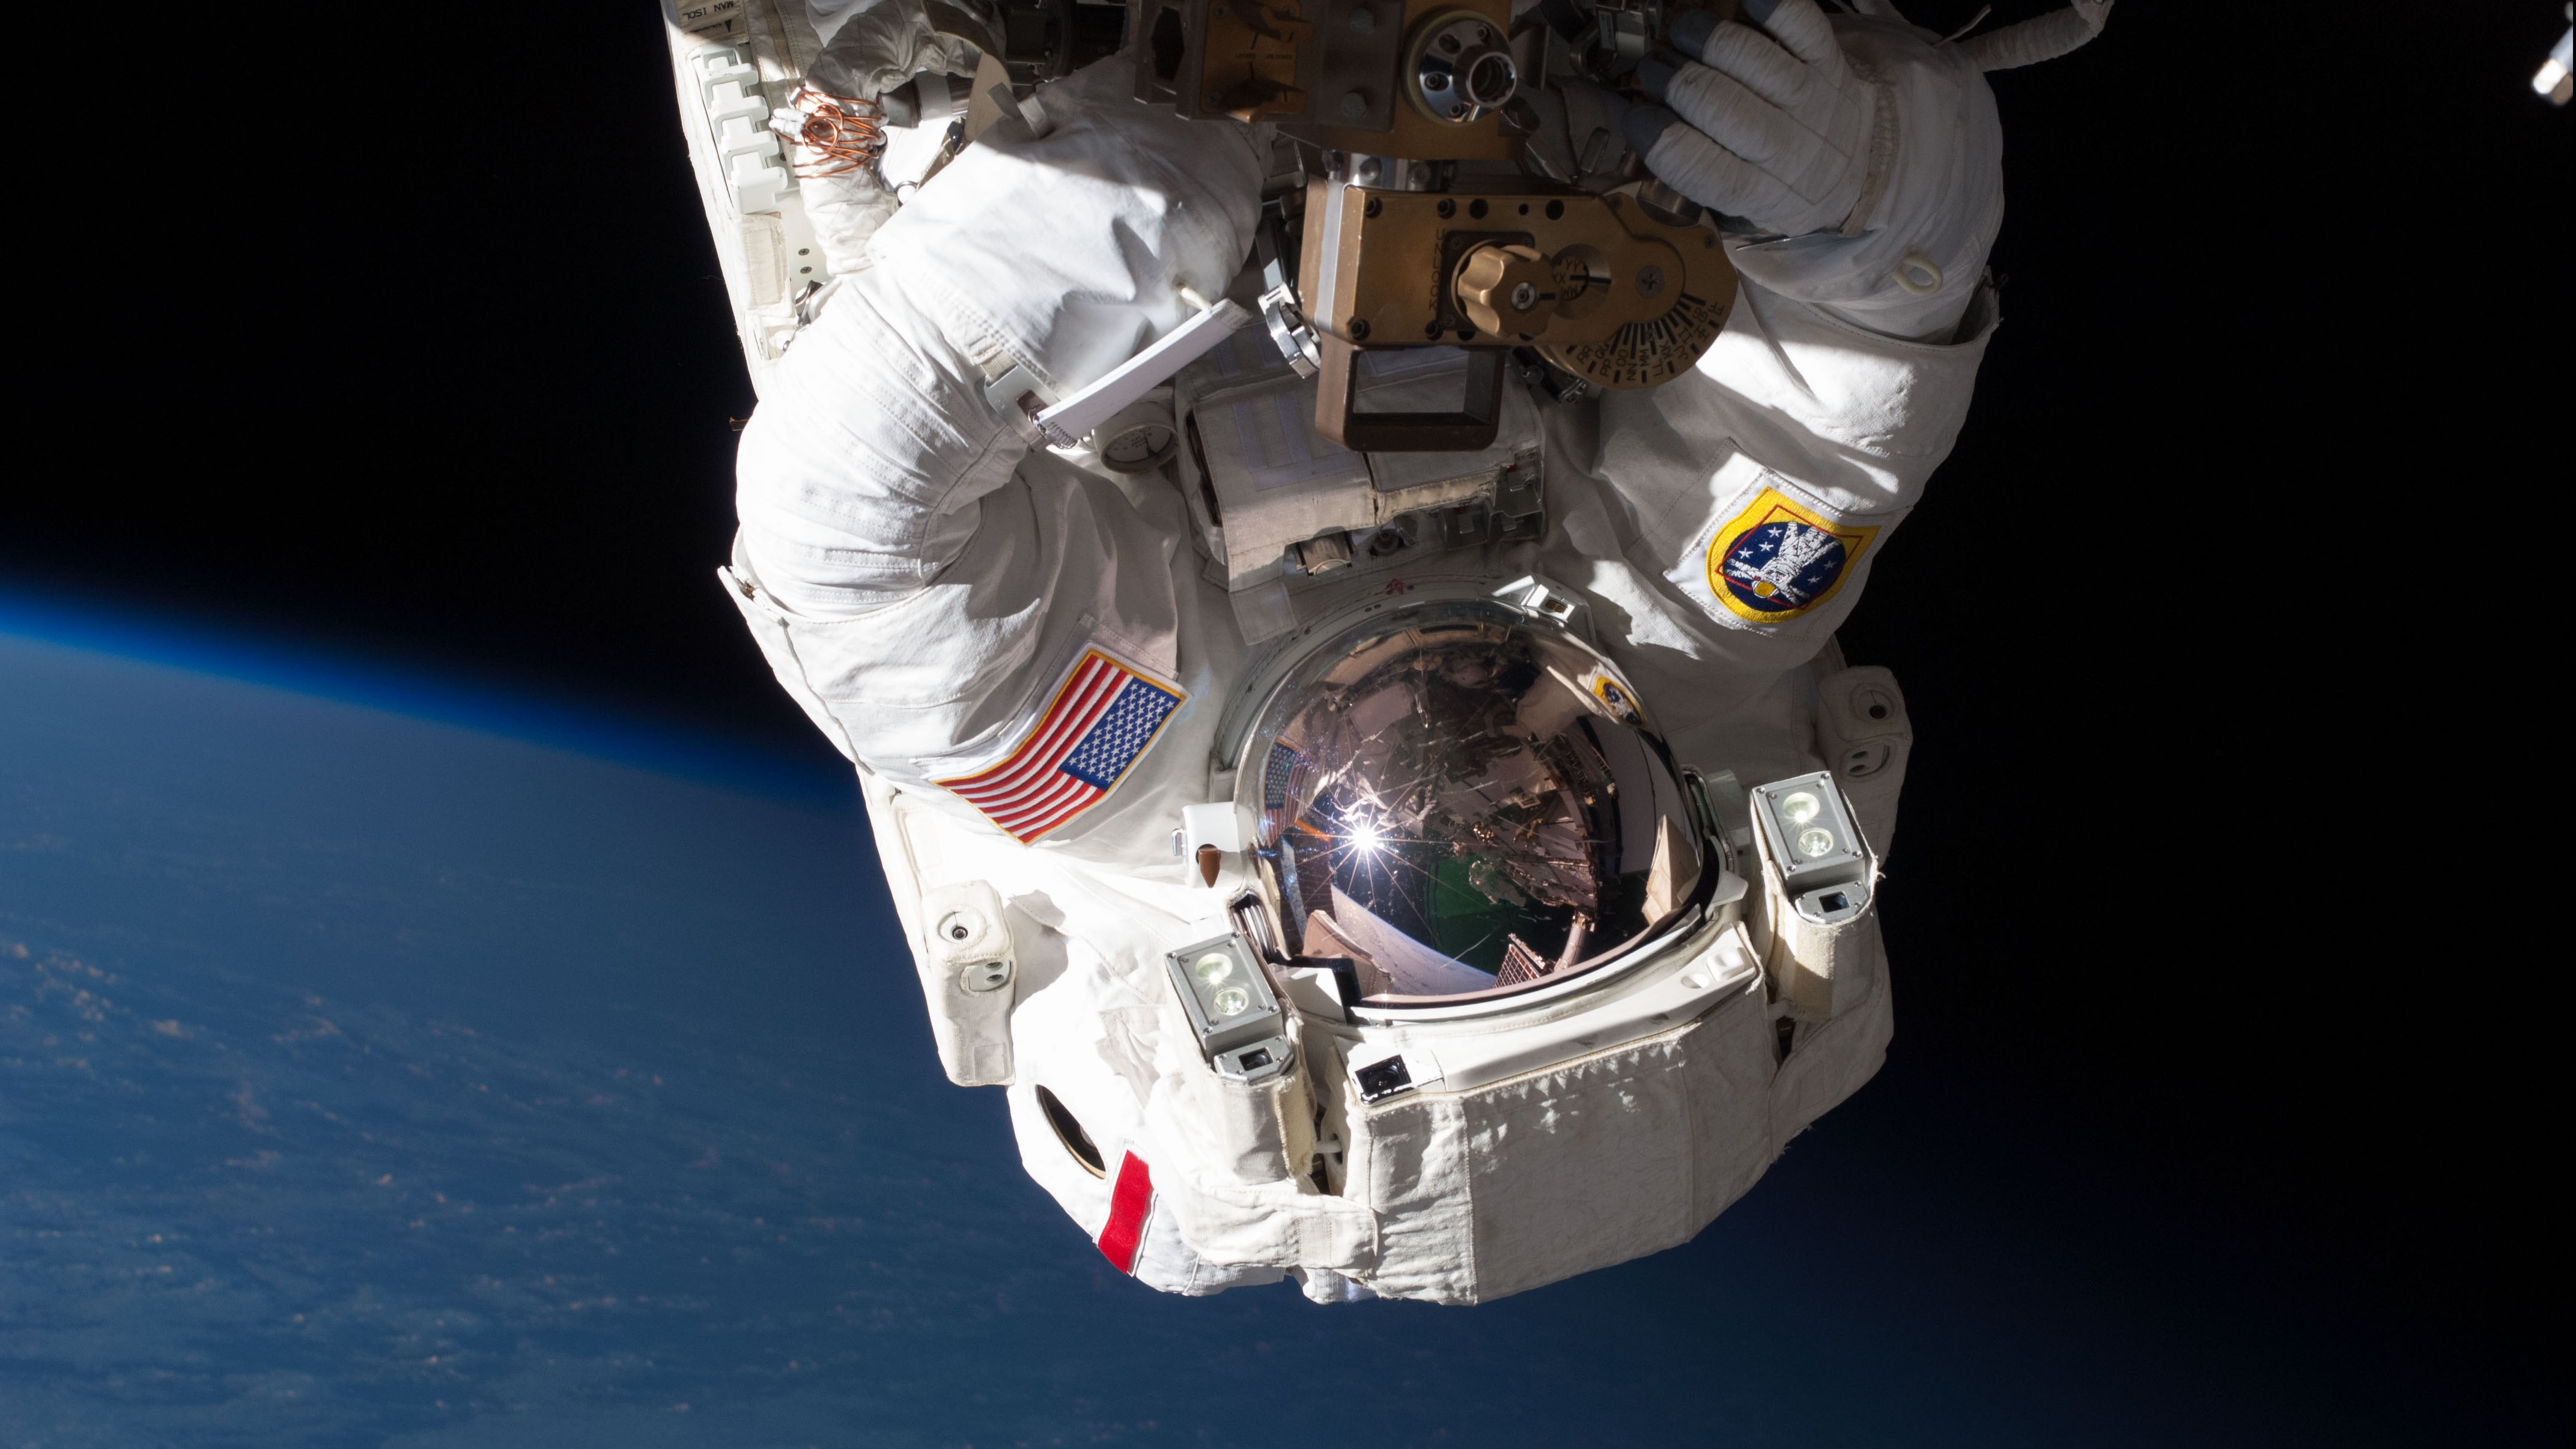 Doctors on Earth treated an astronaut's blood clot in space